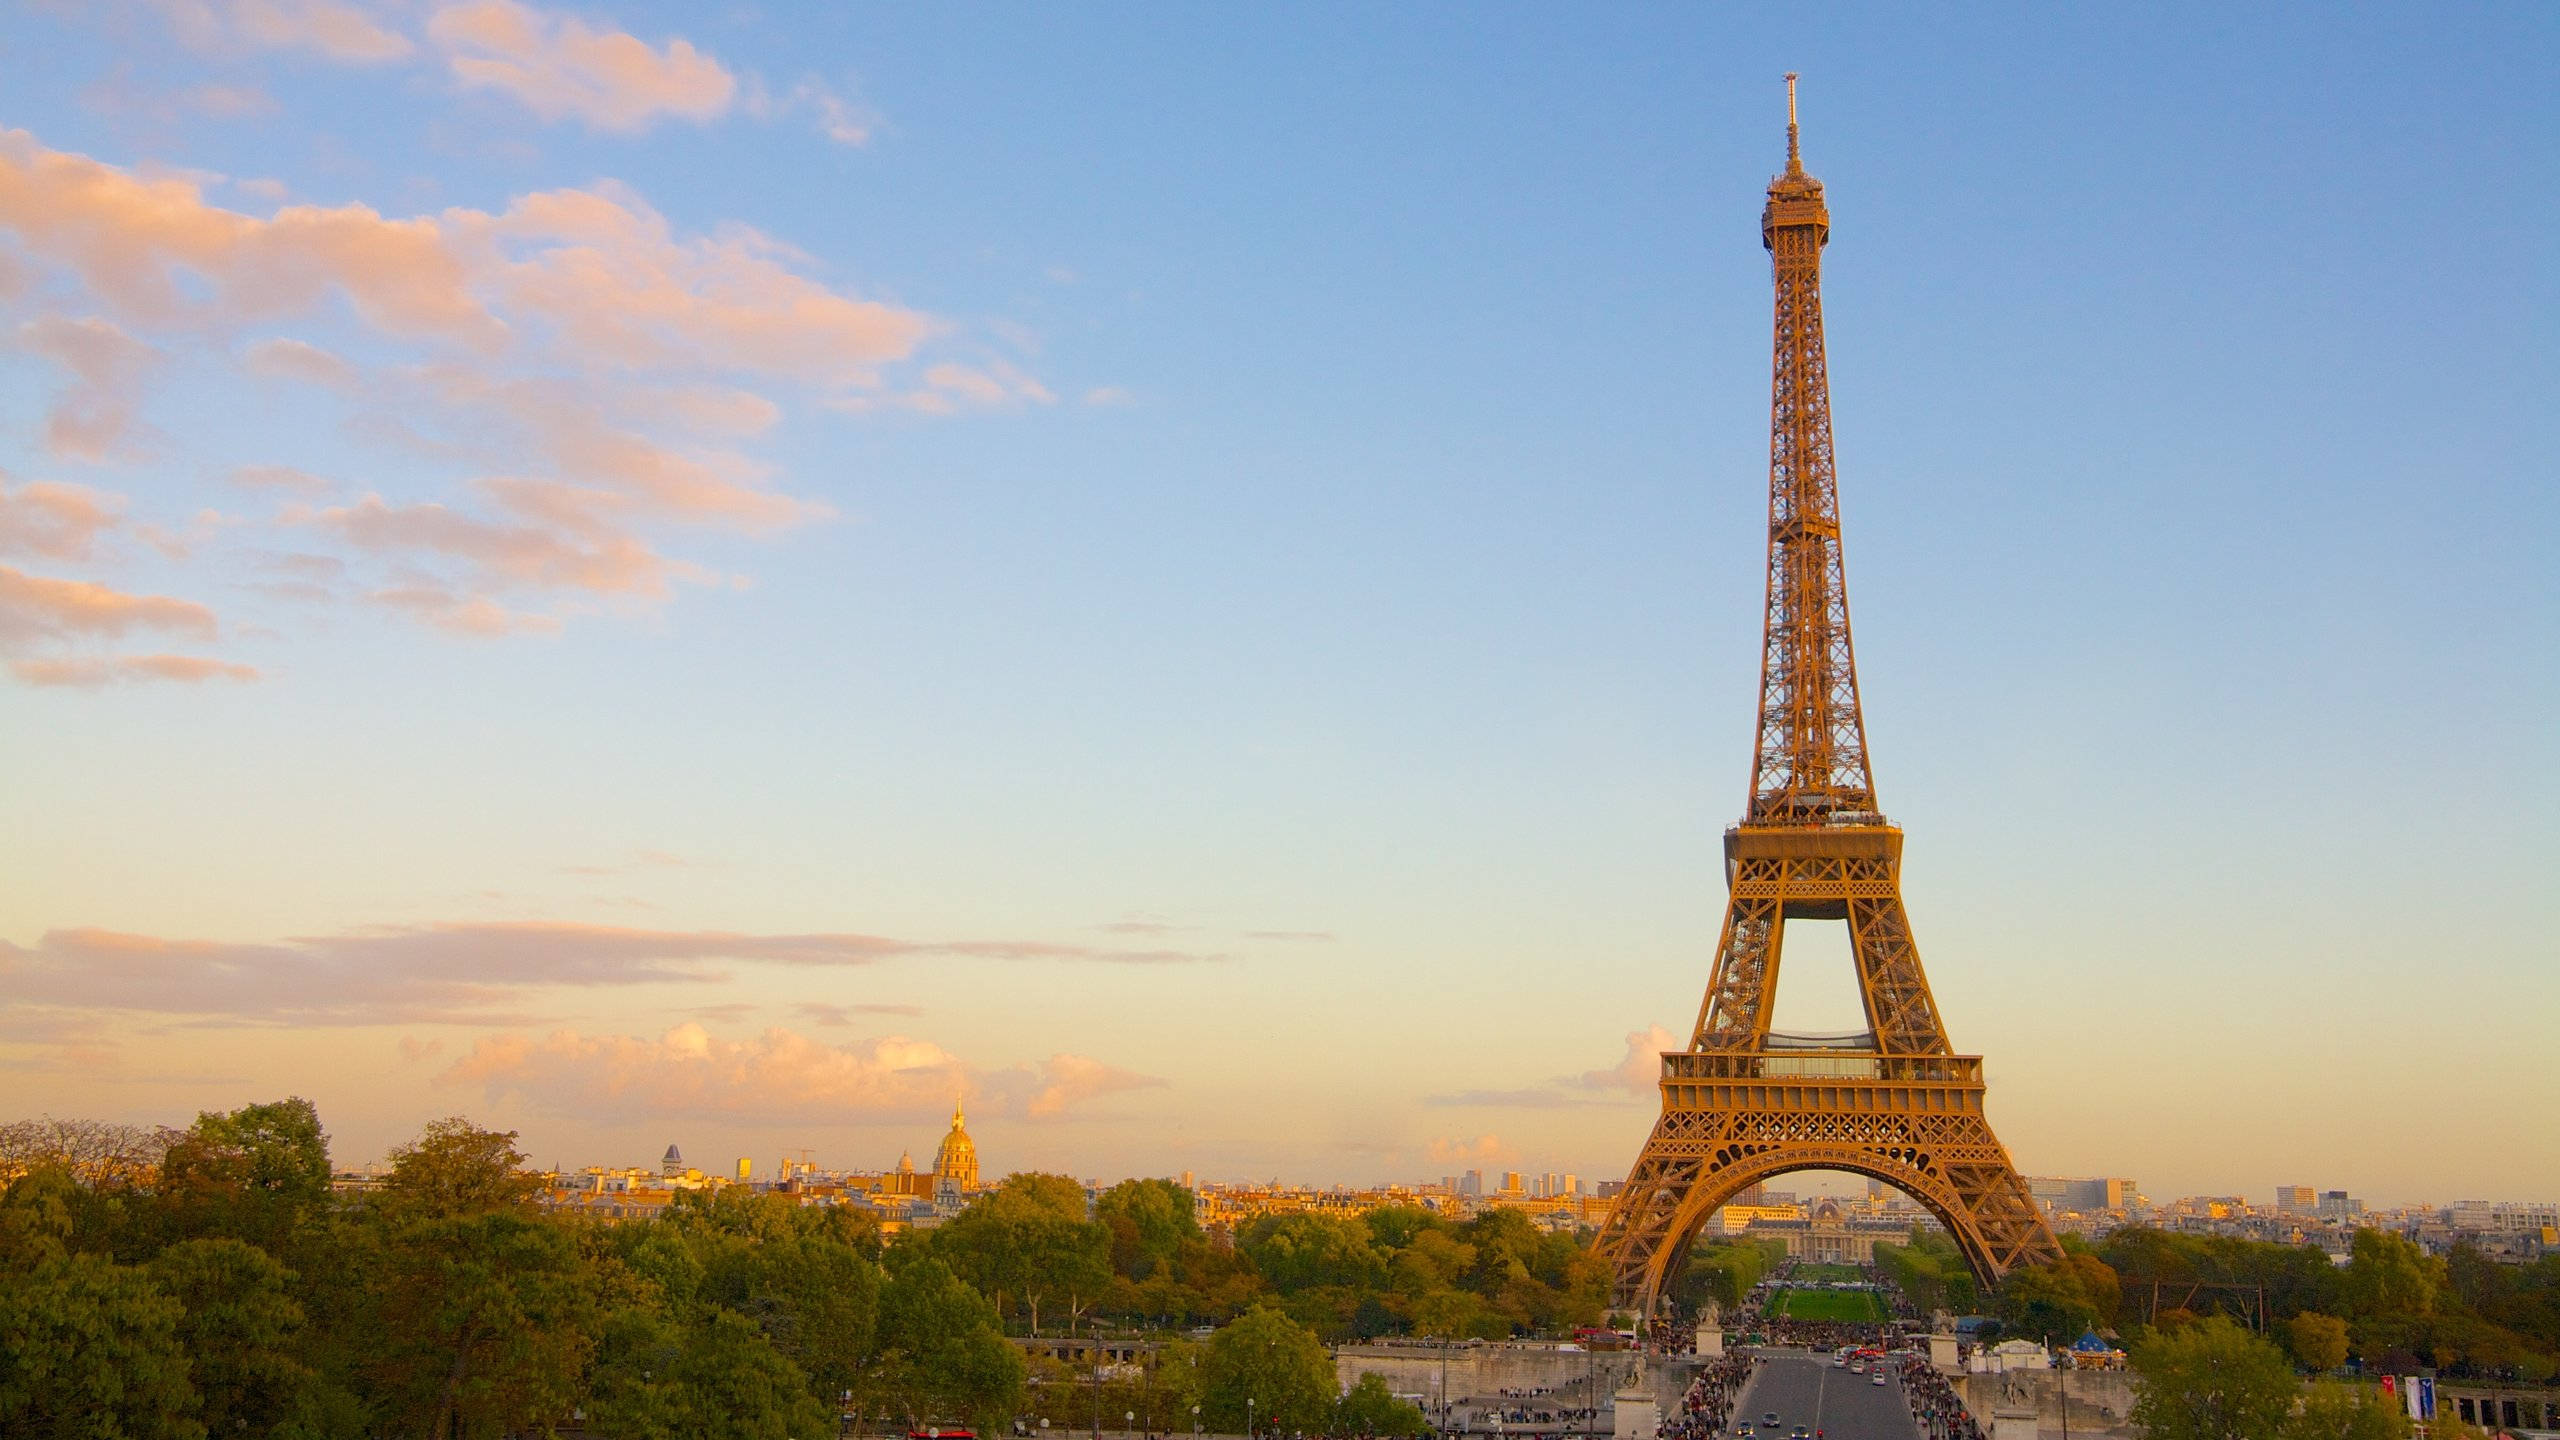 Location Parking Paris 16 Paris Hotels With Free Parking 5222 Free Parking Hotel Deals